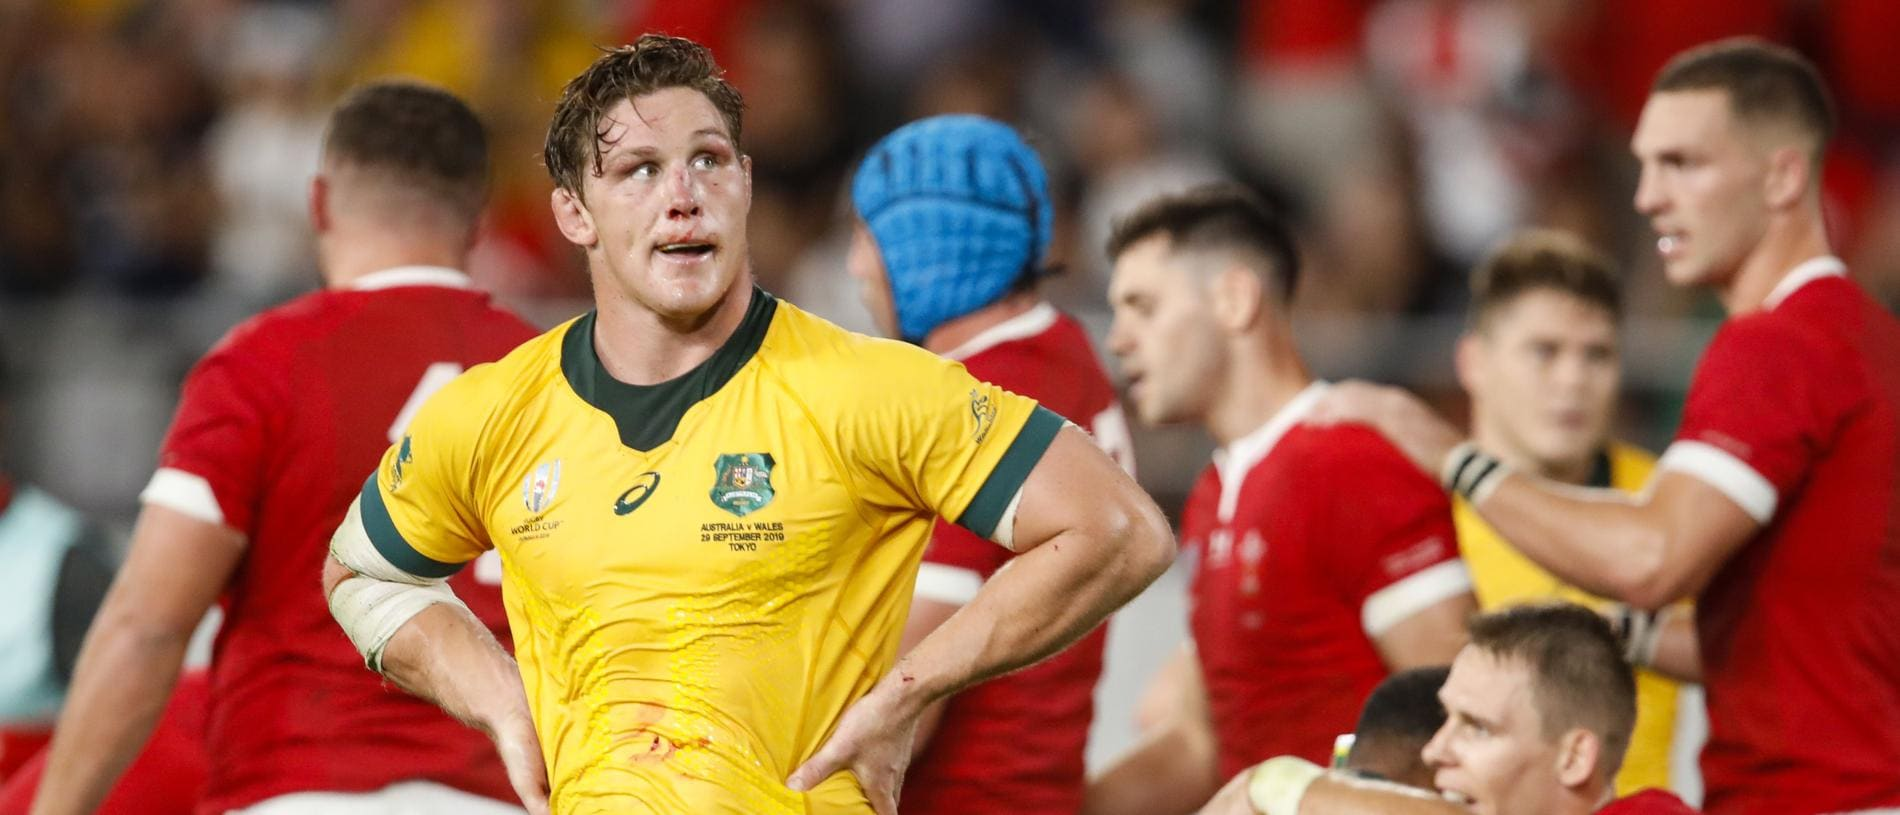 Australia's flanker Michael Hooper reacts after losing the Japan 2019 Rugby World Cup Pool D match between Australia and Wales at the Tokyo Stadium in Tokyo on September 29, 2019. (Photo by Odd ANDERSEN / AFP)